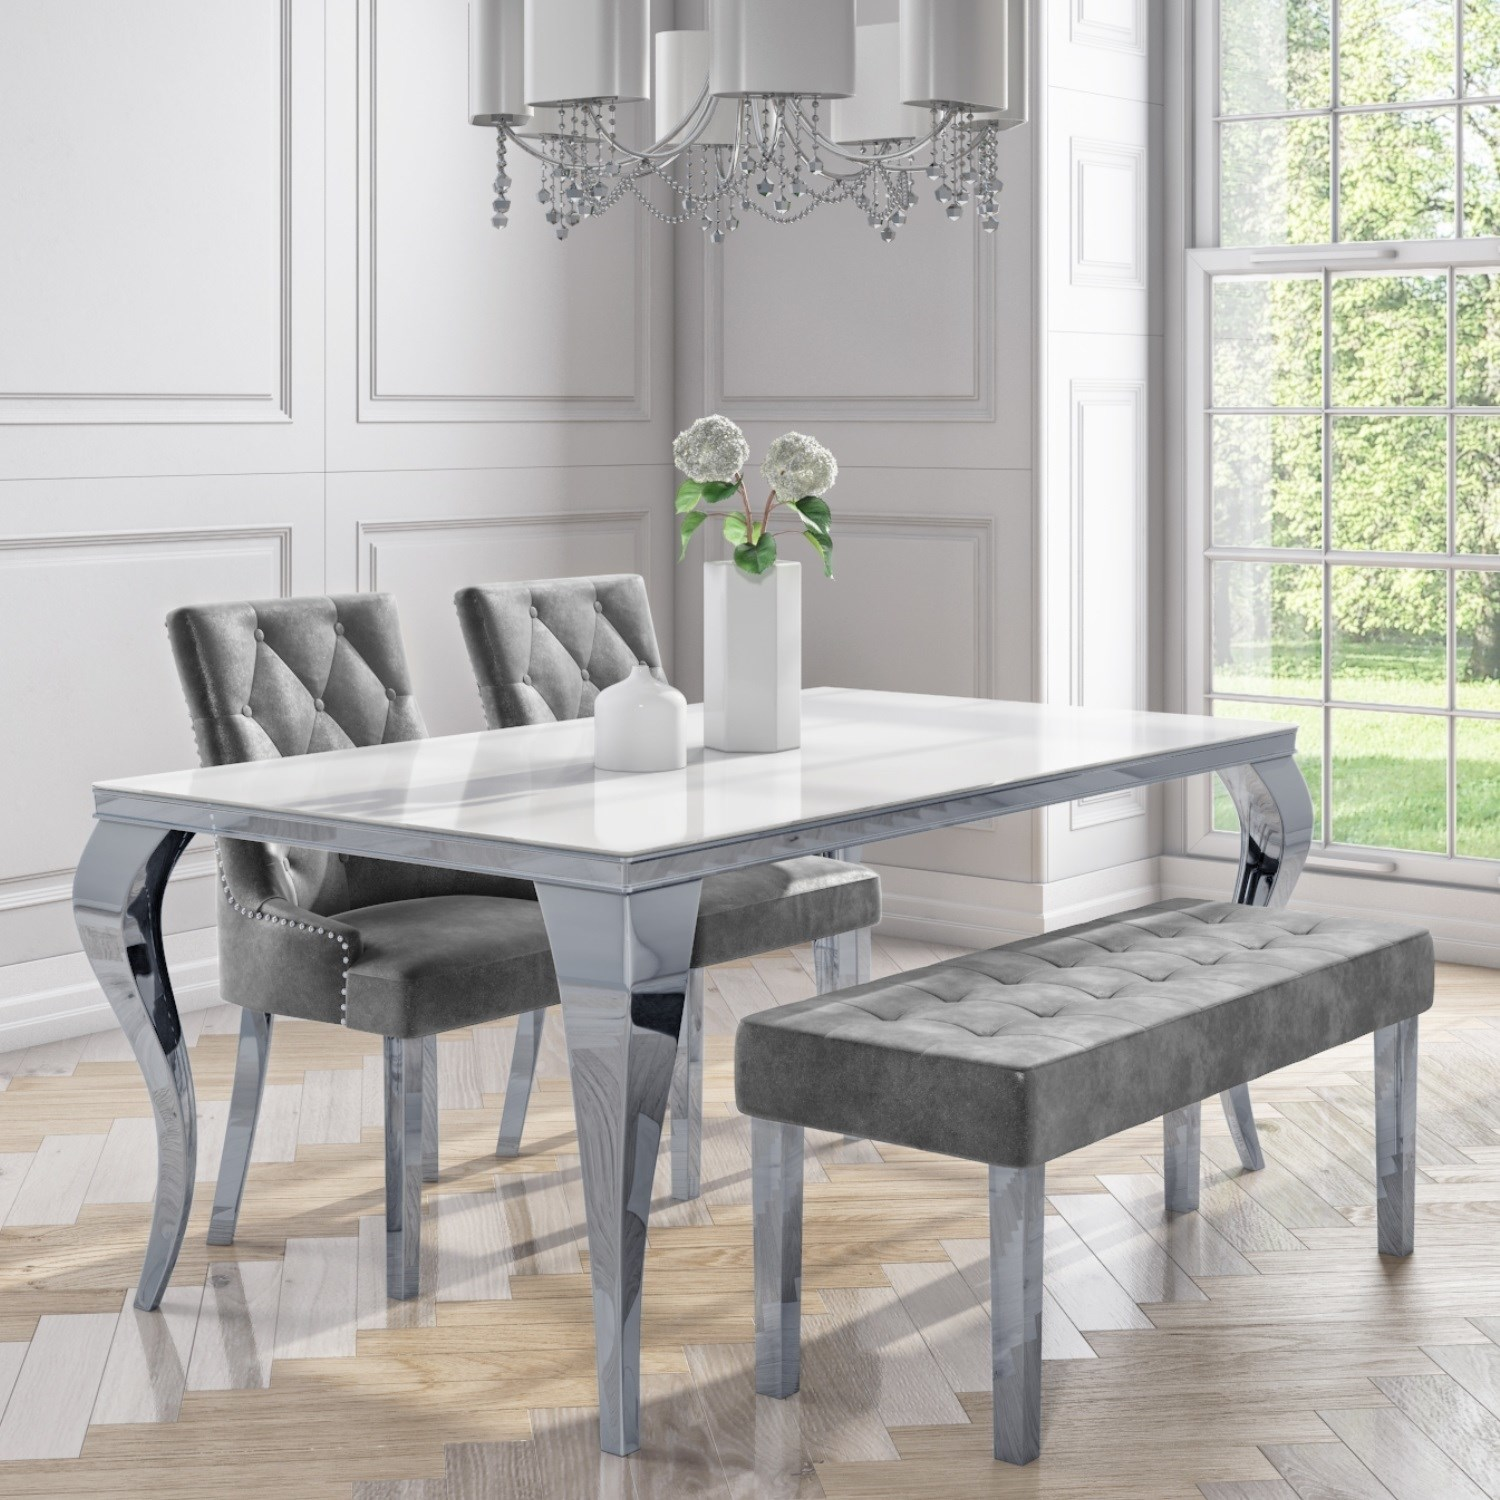 8 Seater Dining Set with White Table 8 Grey Velvet Chairs and 8 Bench -  Jade Boutique